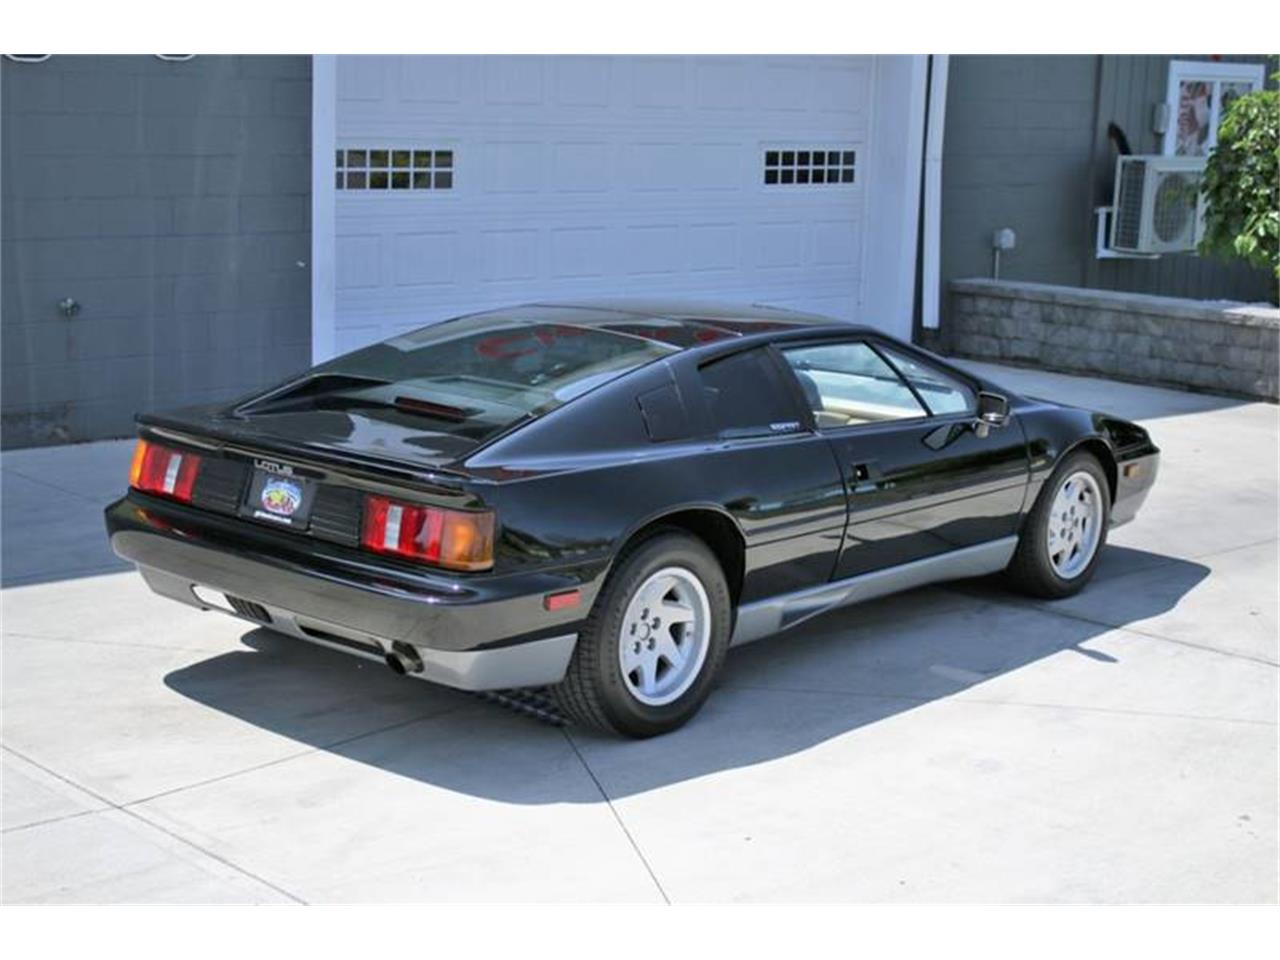 Large Picture of '88 Lotus Esprit - $26,495.00 Offered by Great Lakes Classic Cars - QE3Z